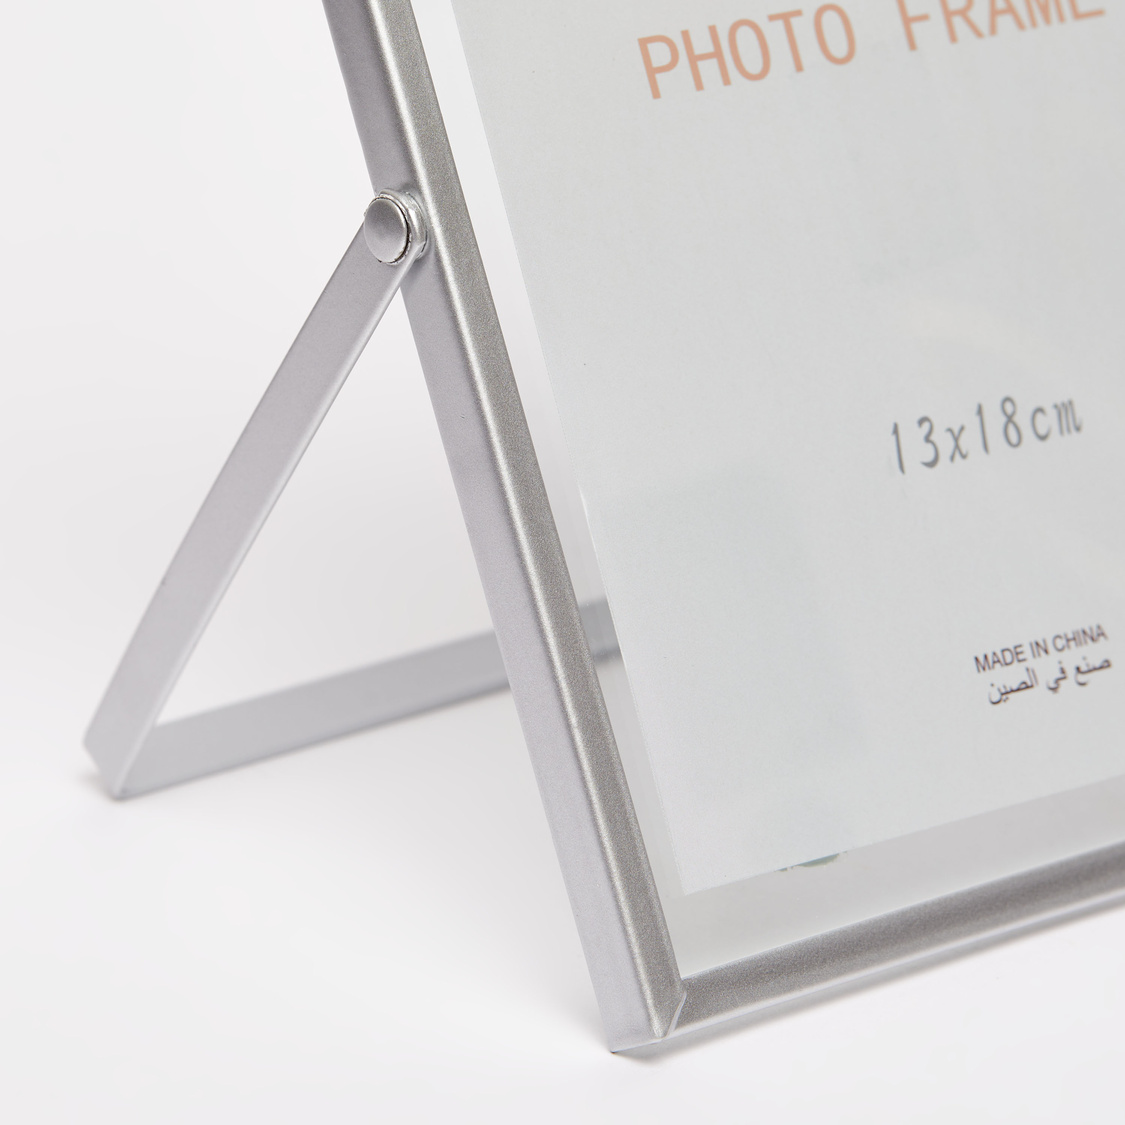 Rectangular Picture Frame with Stand - 18x13 cms